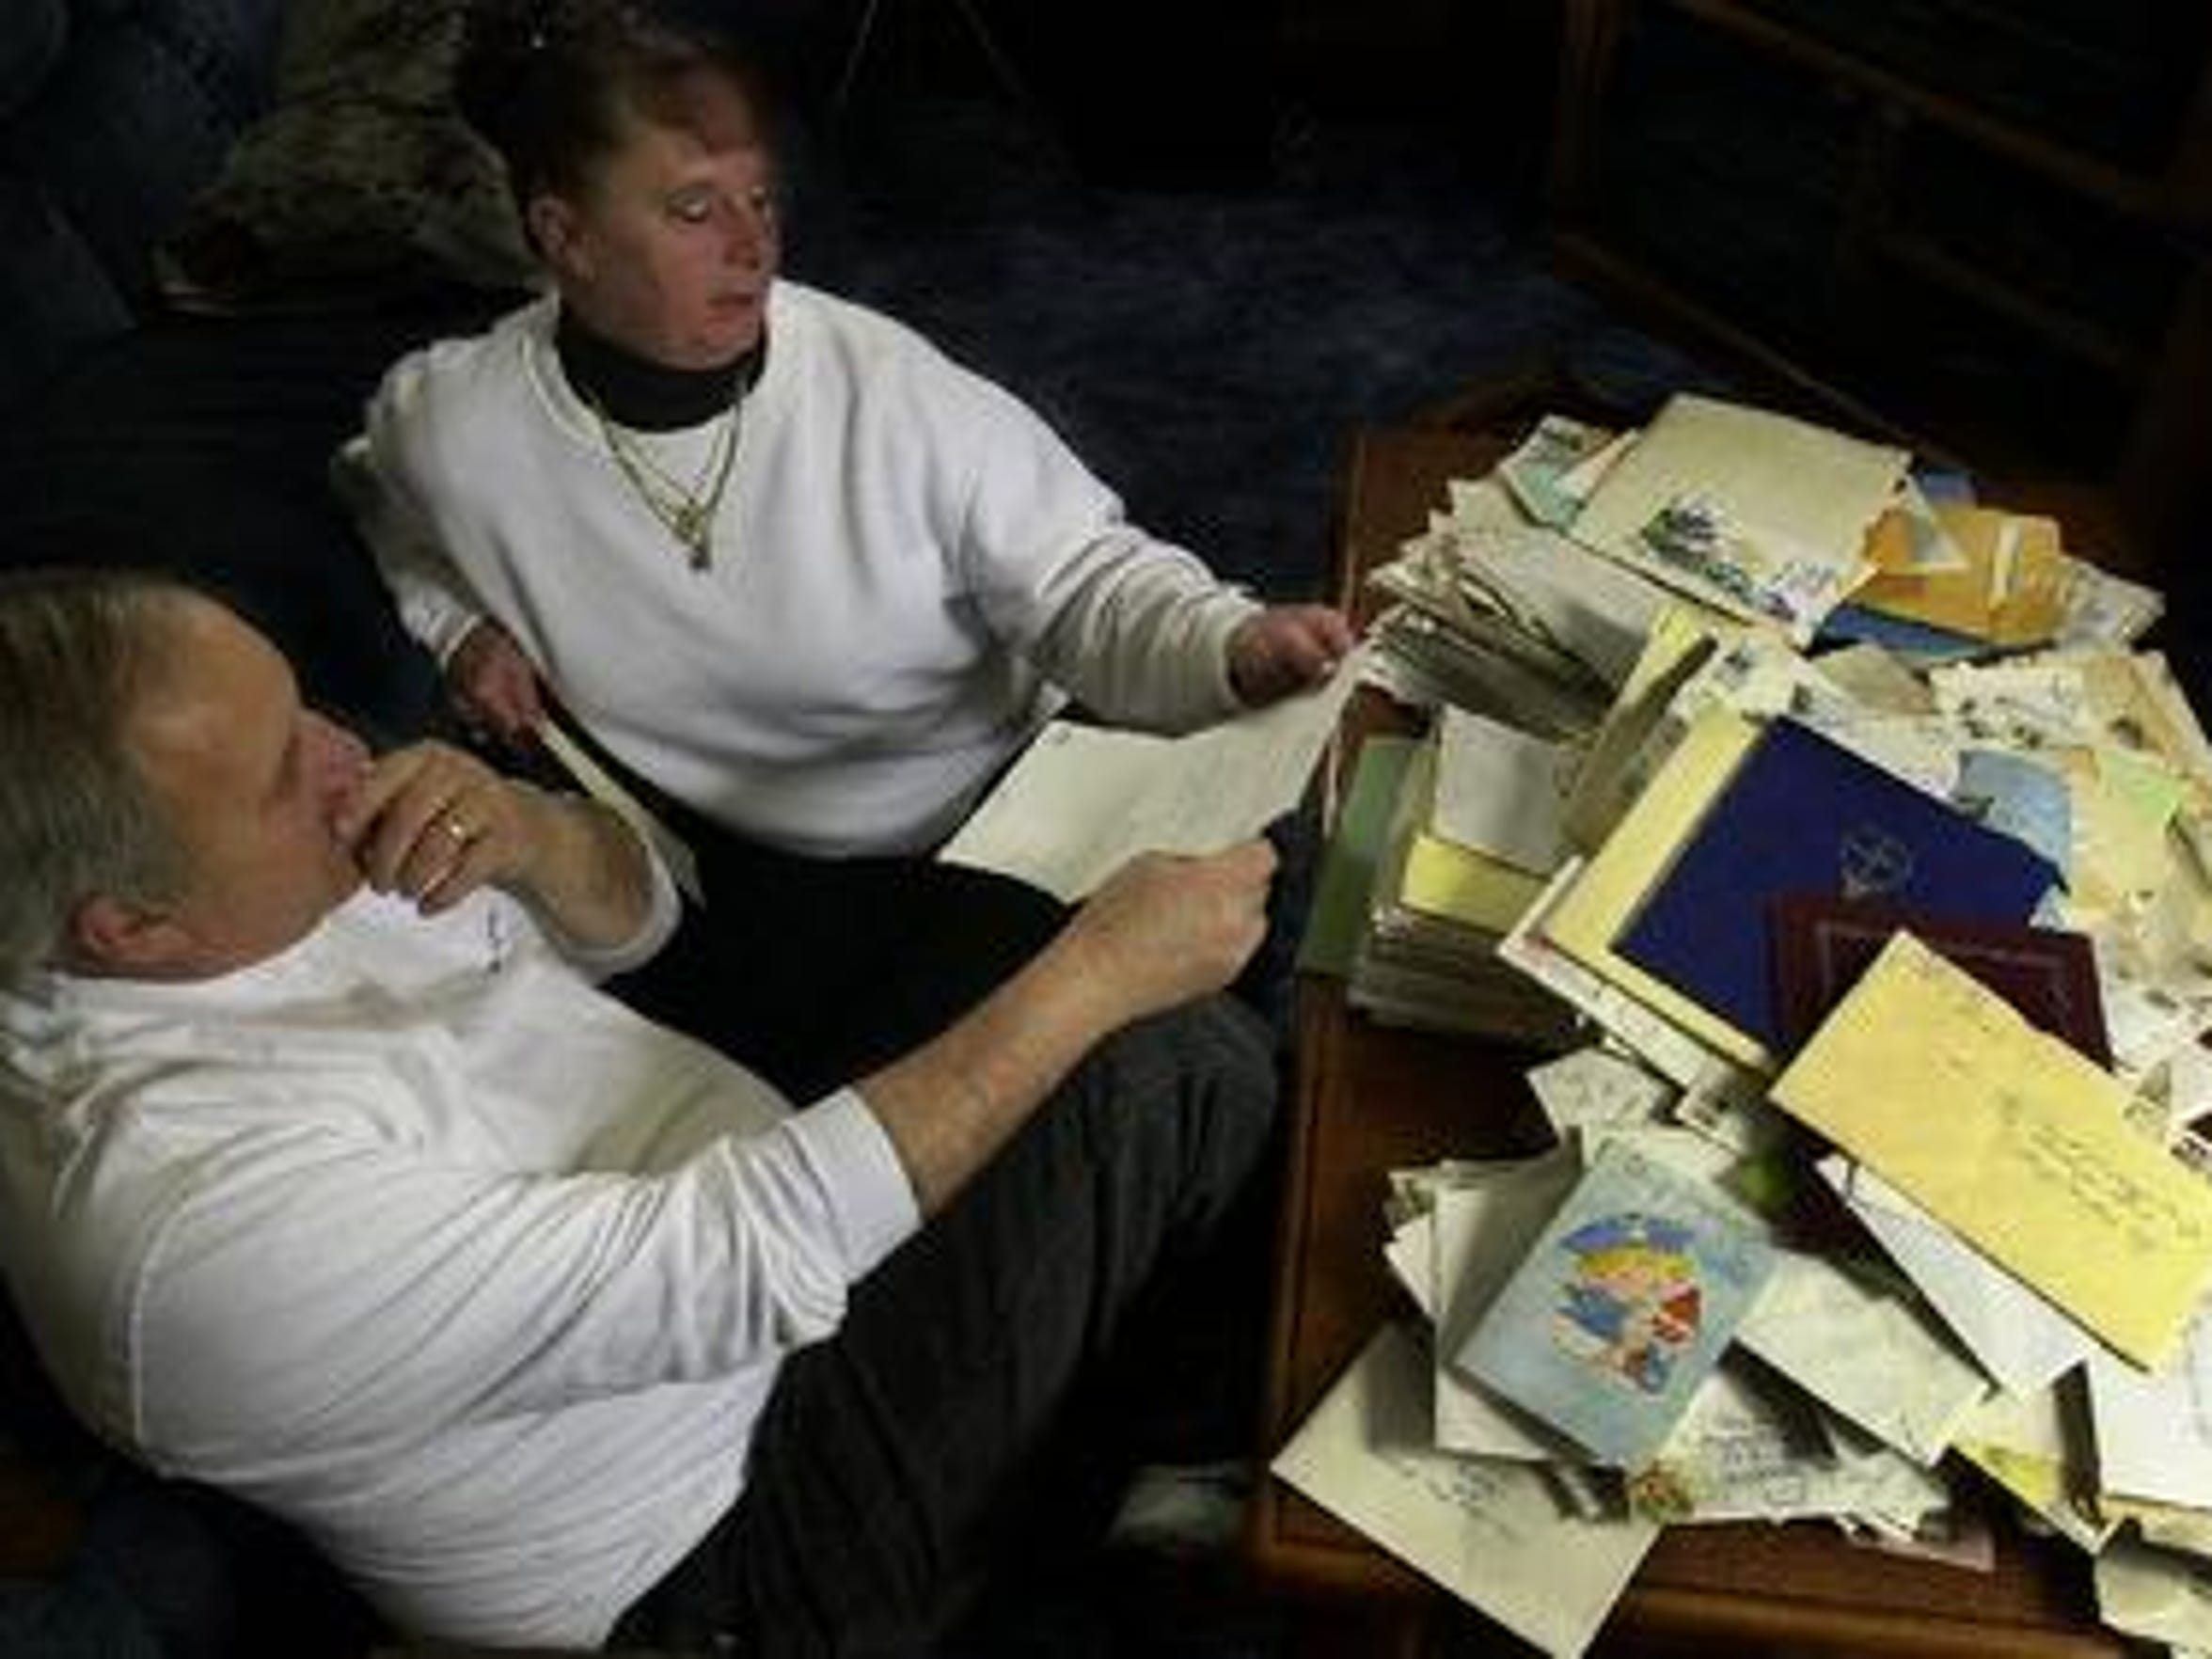 In this 2004 photo, David and Jean Lindsey in their Binghamton home read through the thousands of letters and cards they received after their daughter Cheri's murder 20 years earlier.